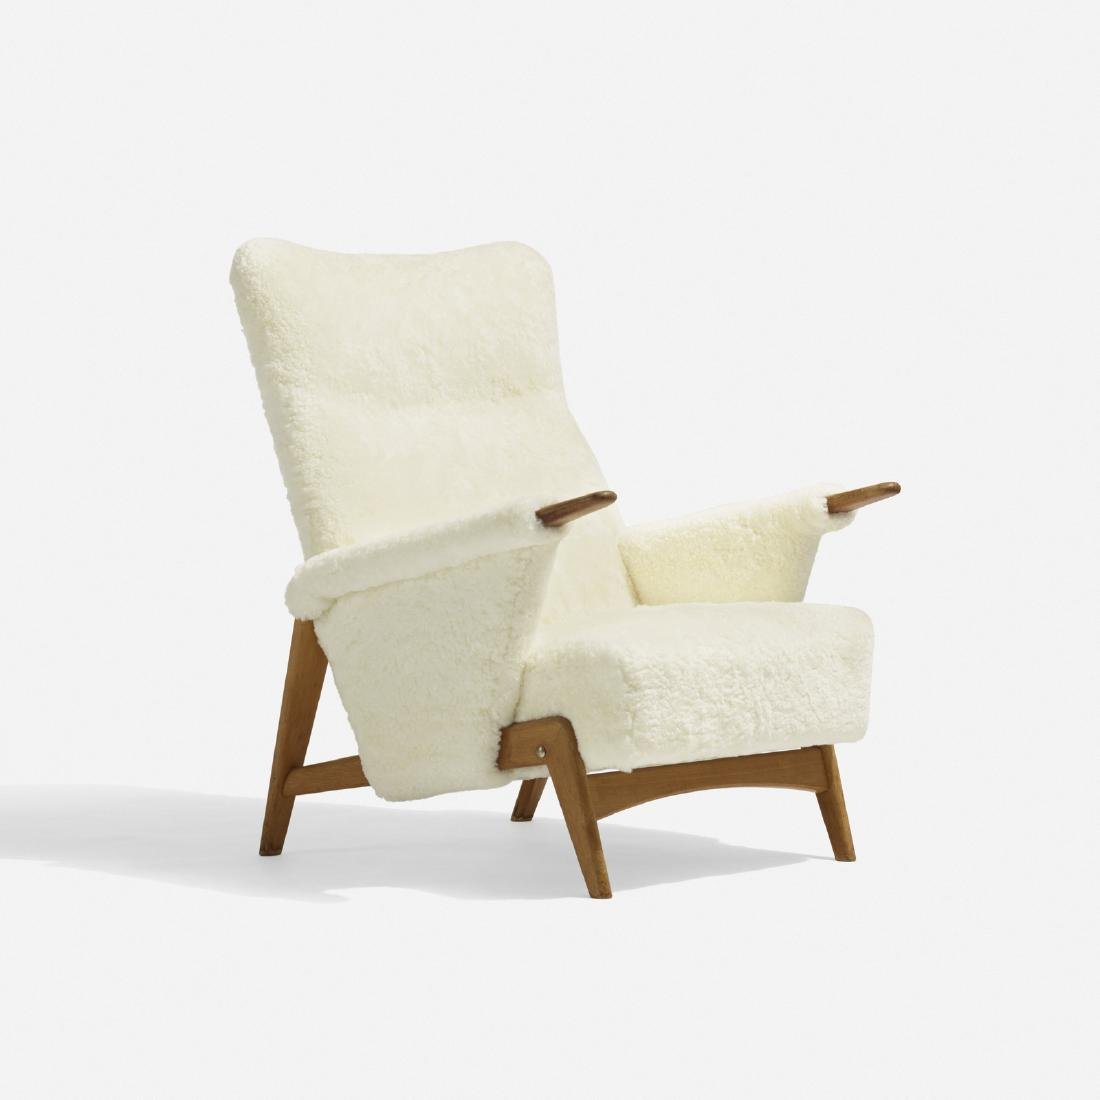 Arne Hovmand-Olsen, lounge chair, model 480